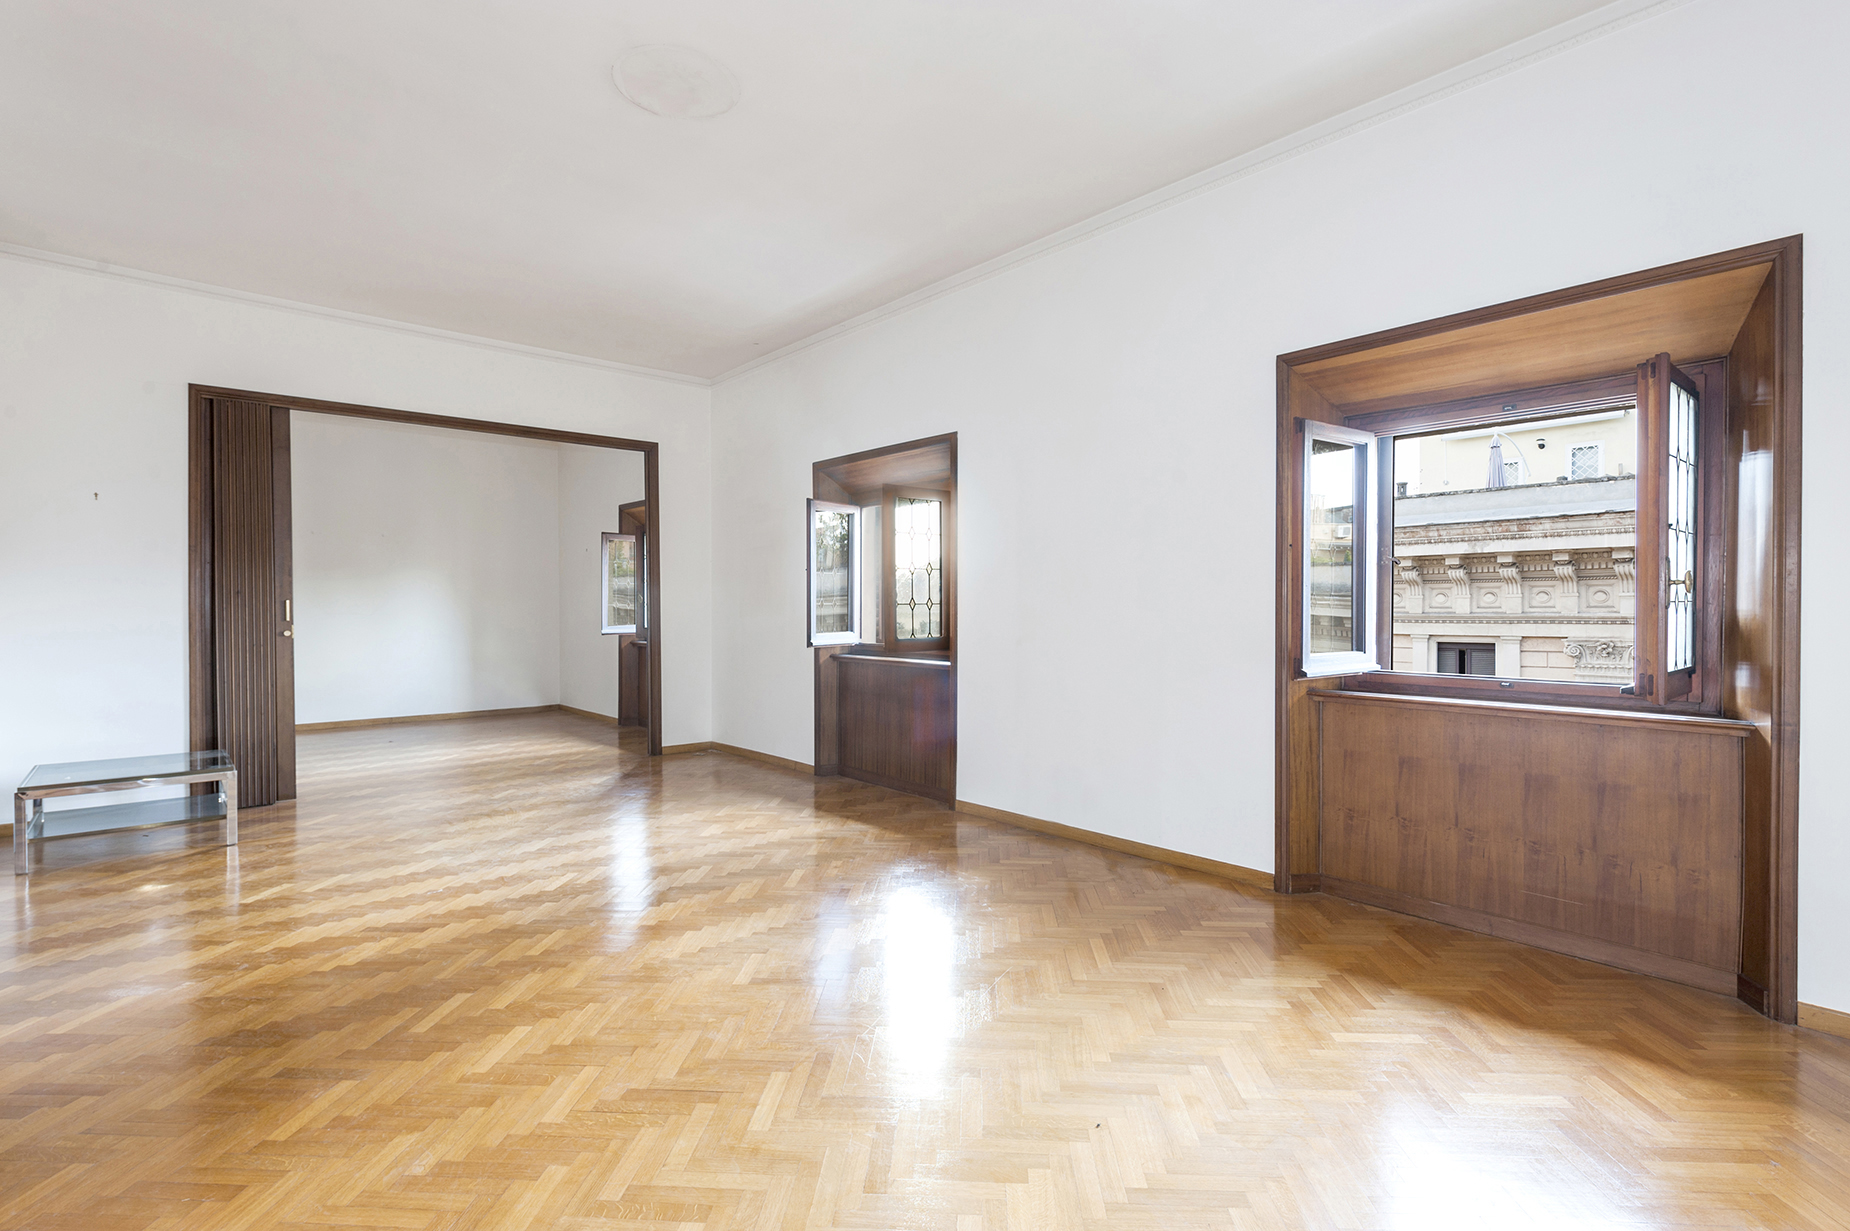 Additional photo for property listing at Elegant and bright apartment in the Sallustiano district Via Piave Rome, Roma 00187 Italia